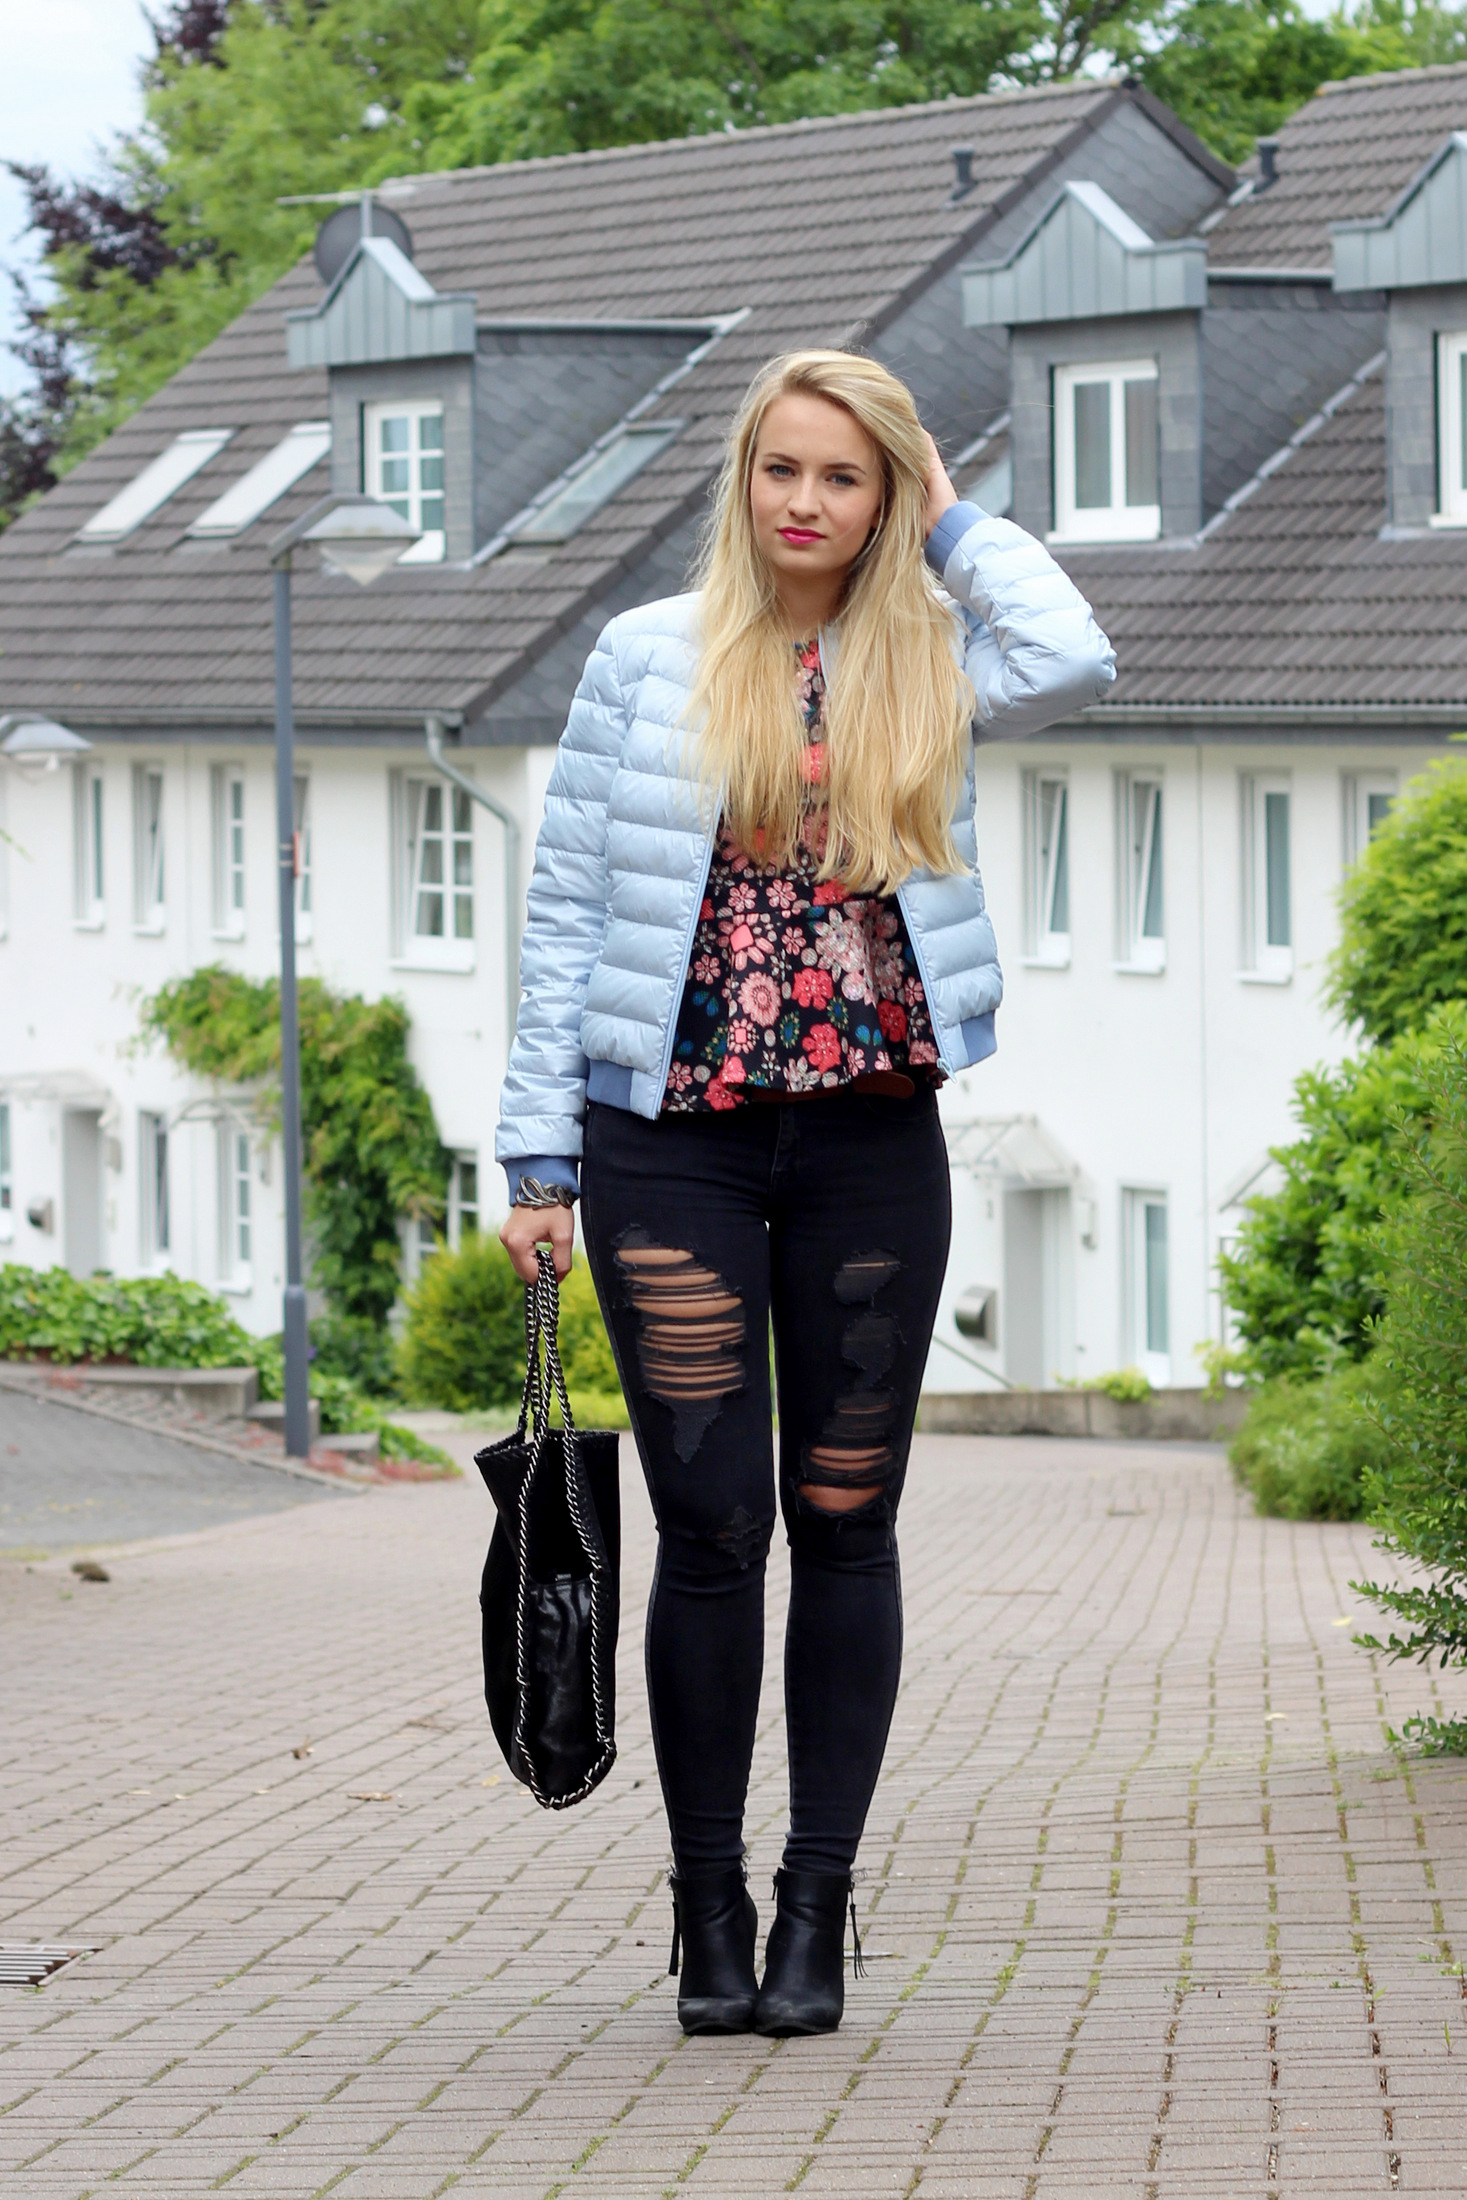 lightweight-jacket-peplum-shirt-flowers-skinny-jeans-ripped-destroyed-jeans (8)